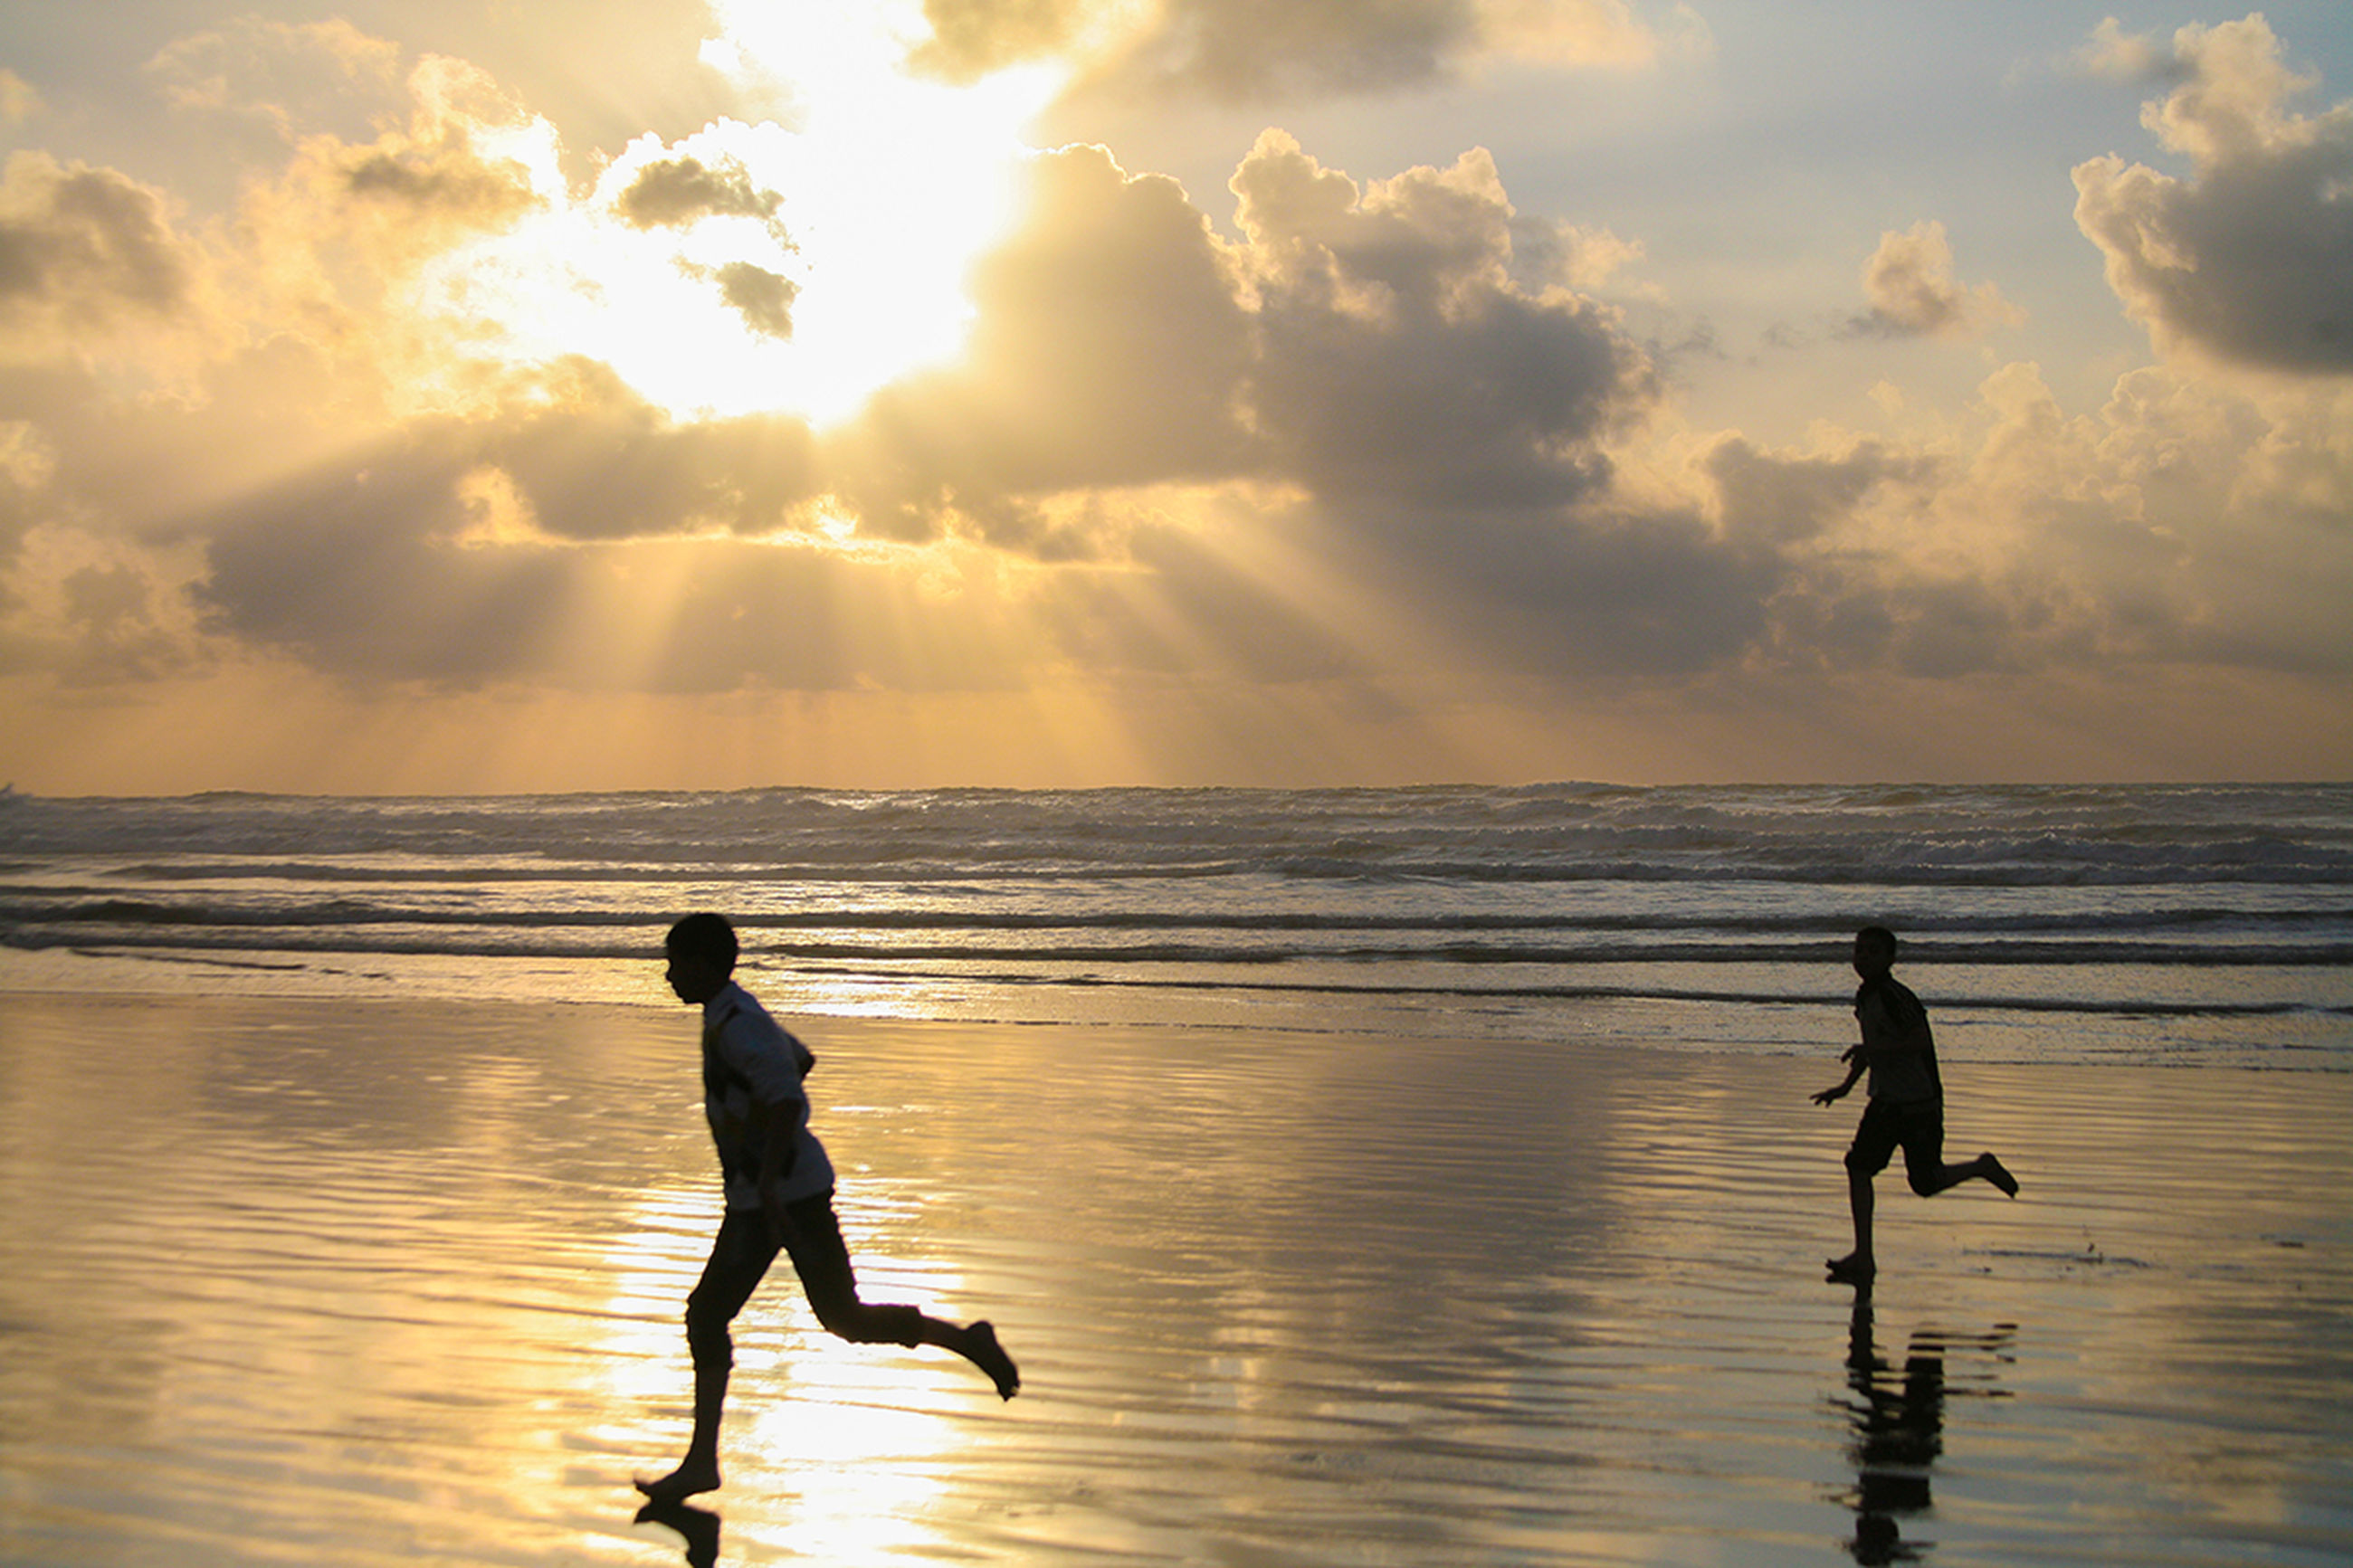 sunset, sea, water, horizon over water, silhouette, beach, sky, leisure activity, lifestyles, sun, reflection, full length, beauty in nature, scenics, vacations, men, cloud - sky, shore